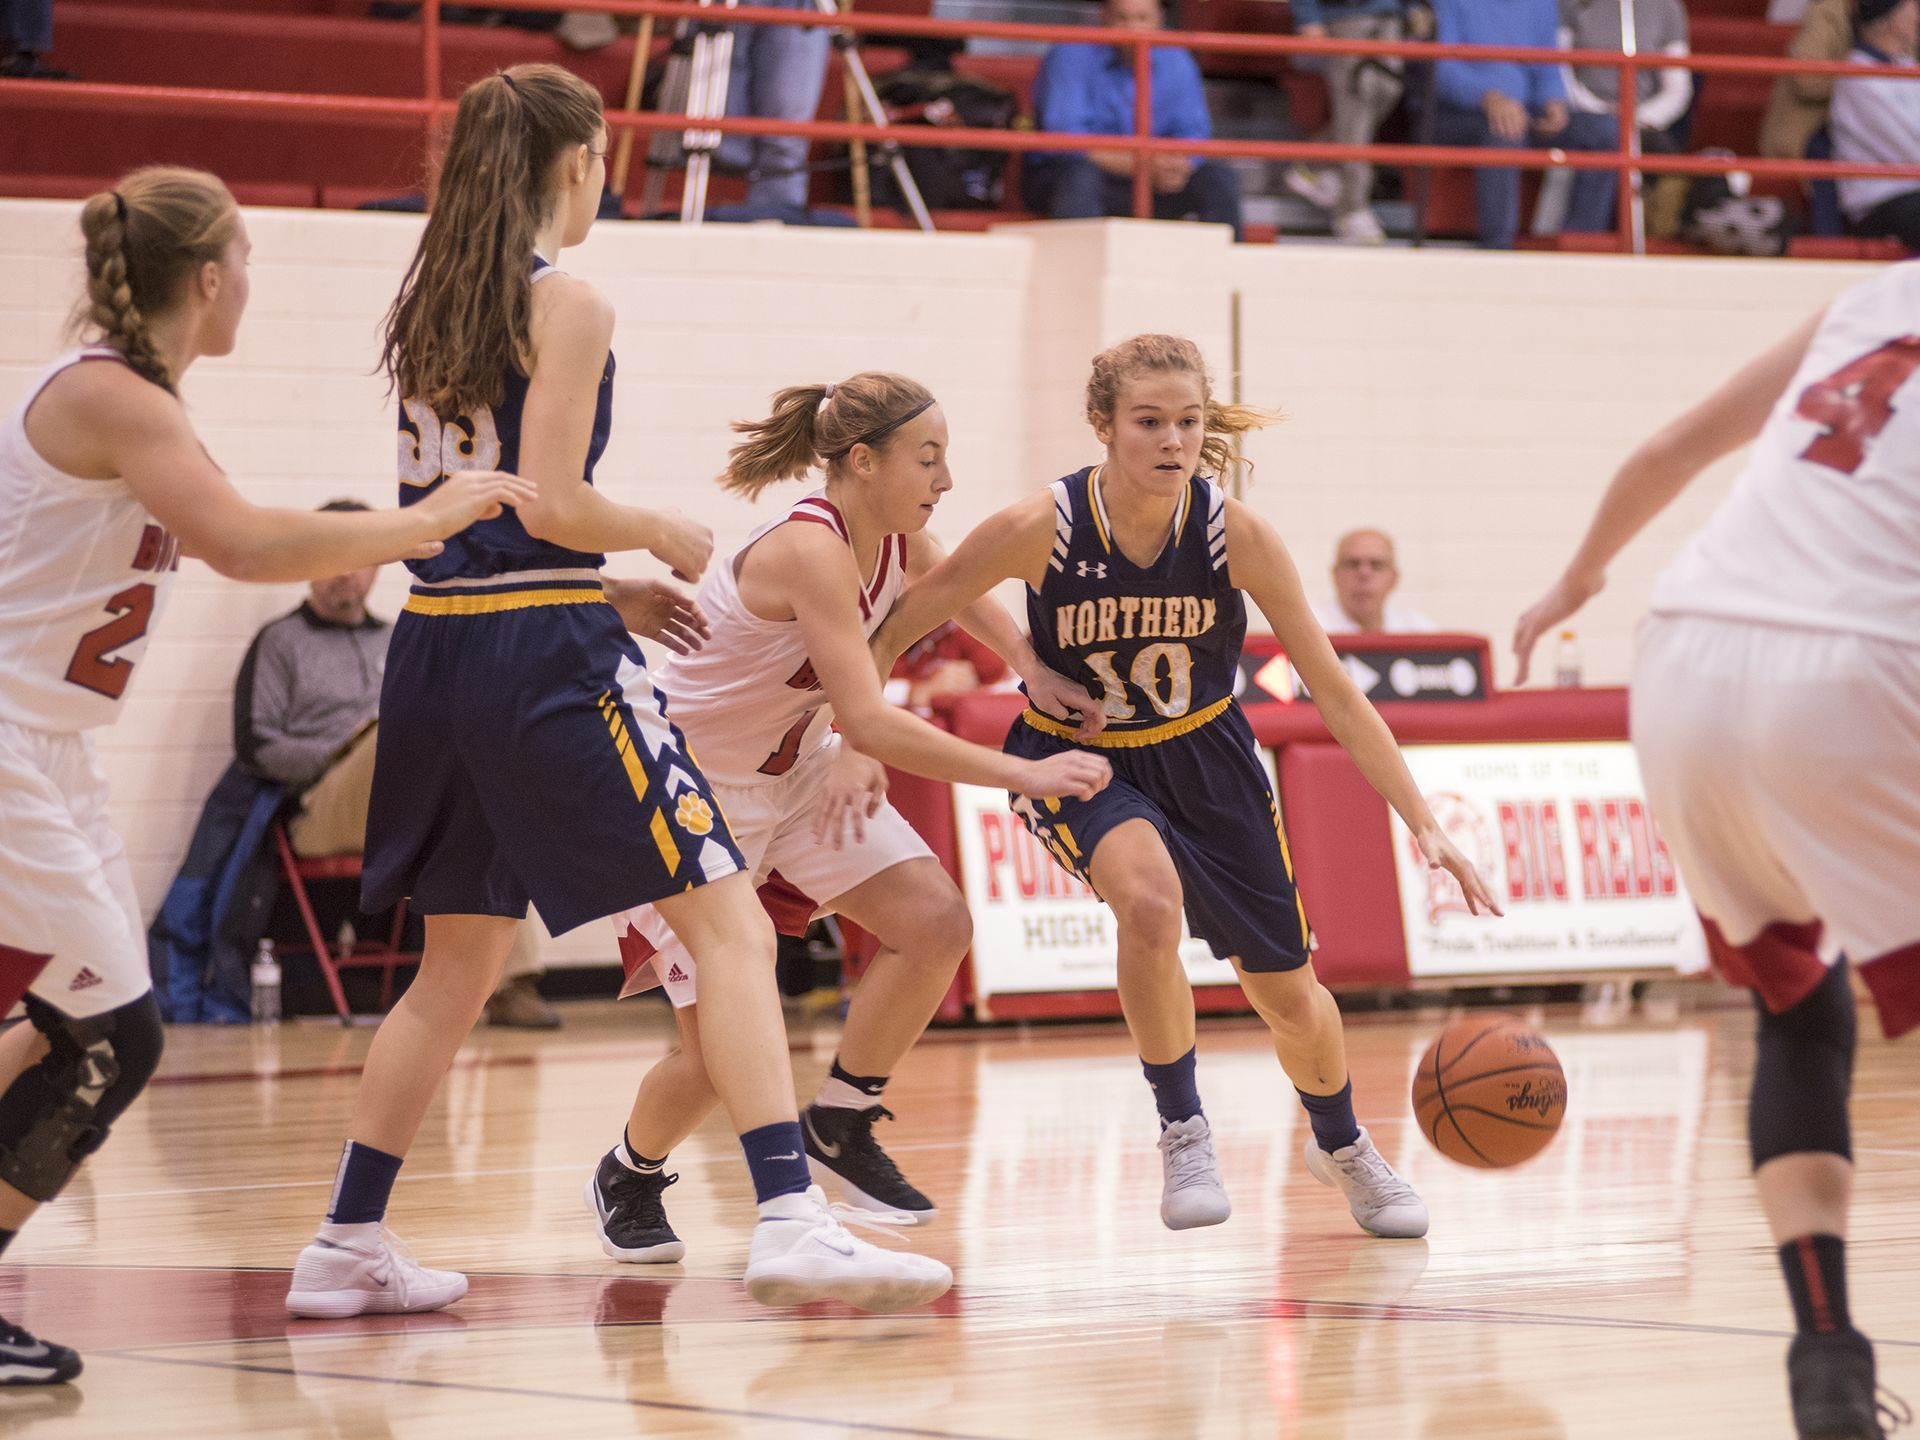 Times Herald Girls Hoops Poll: NORTHERN IN IN TOP SPOT